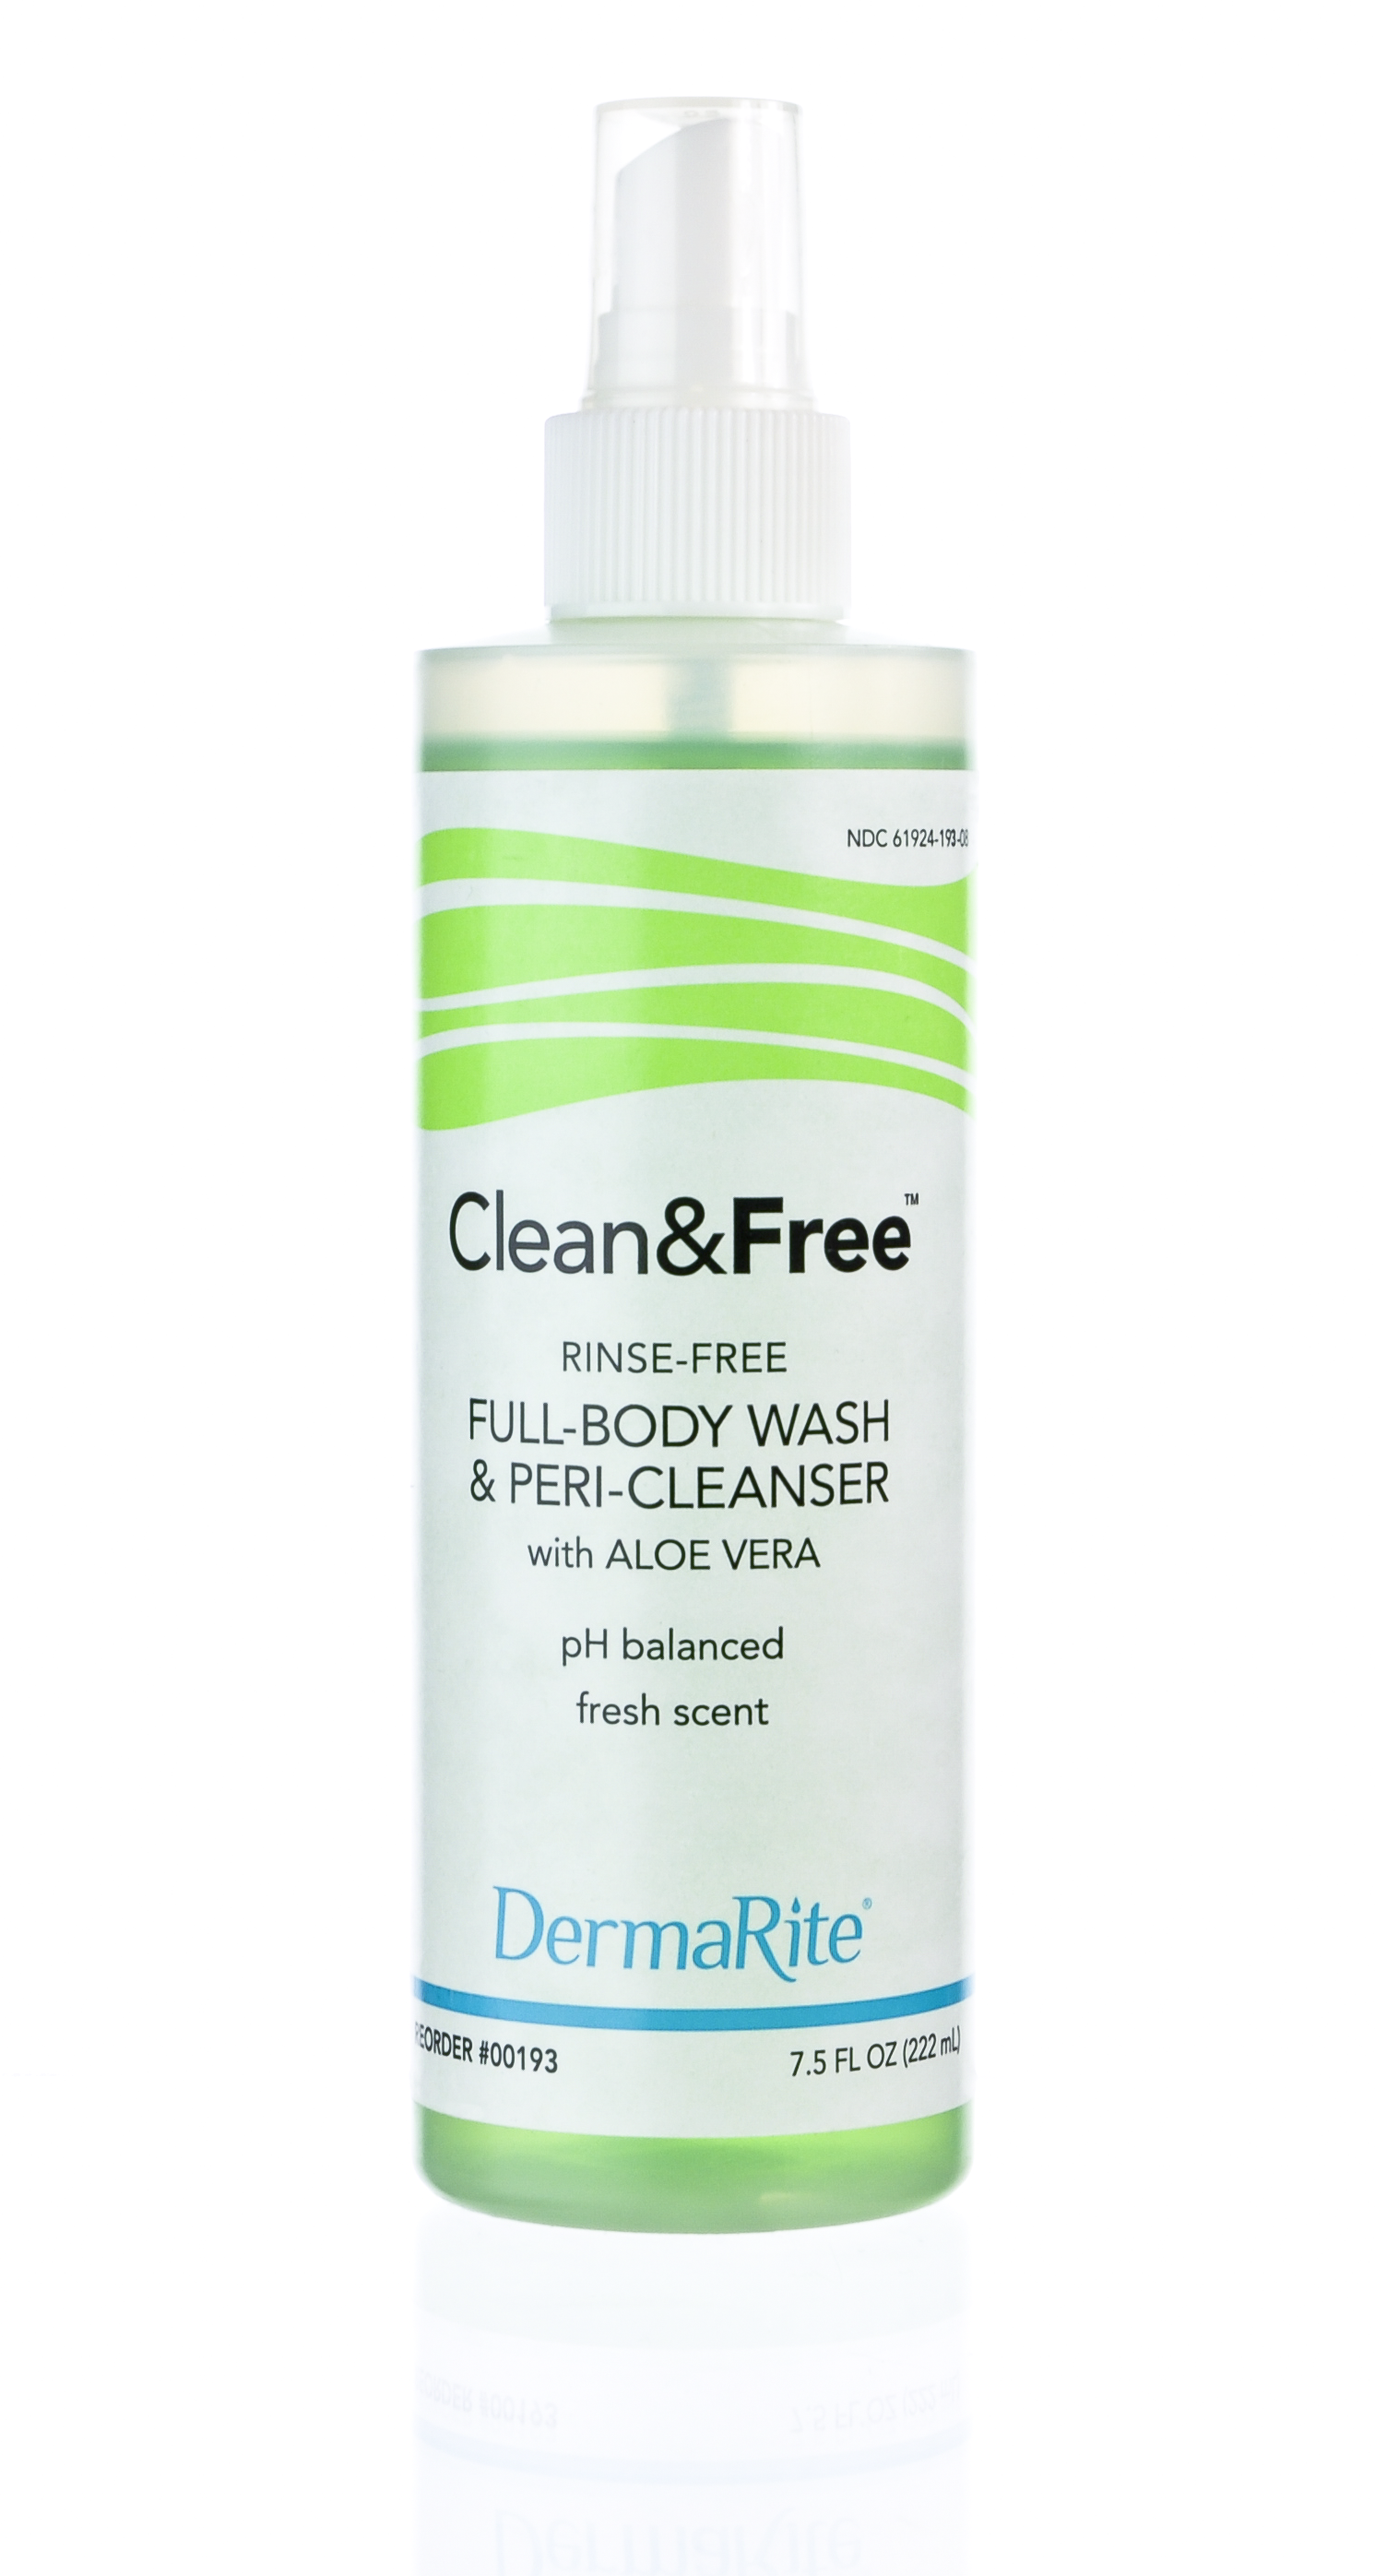 mild rinse-free body wash shampoo perineal cleanser water-free